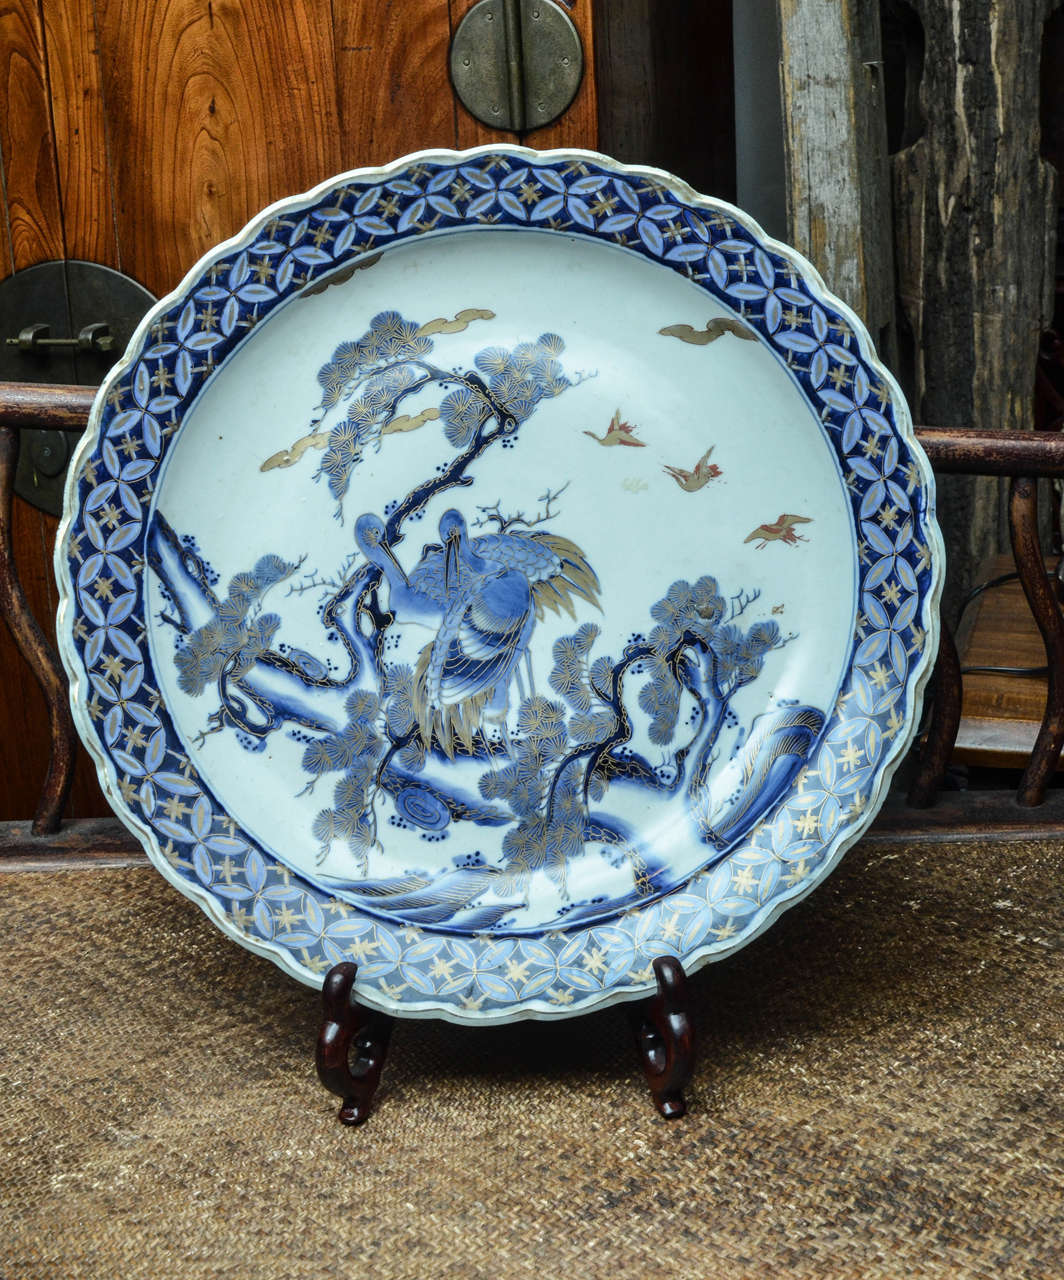 Mid-19th century Japanese porcelain blue and white imari charger with gold leaf overlay.